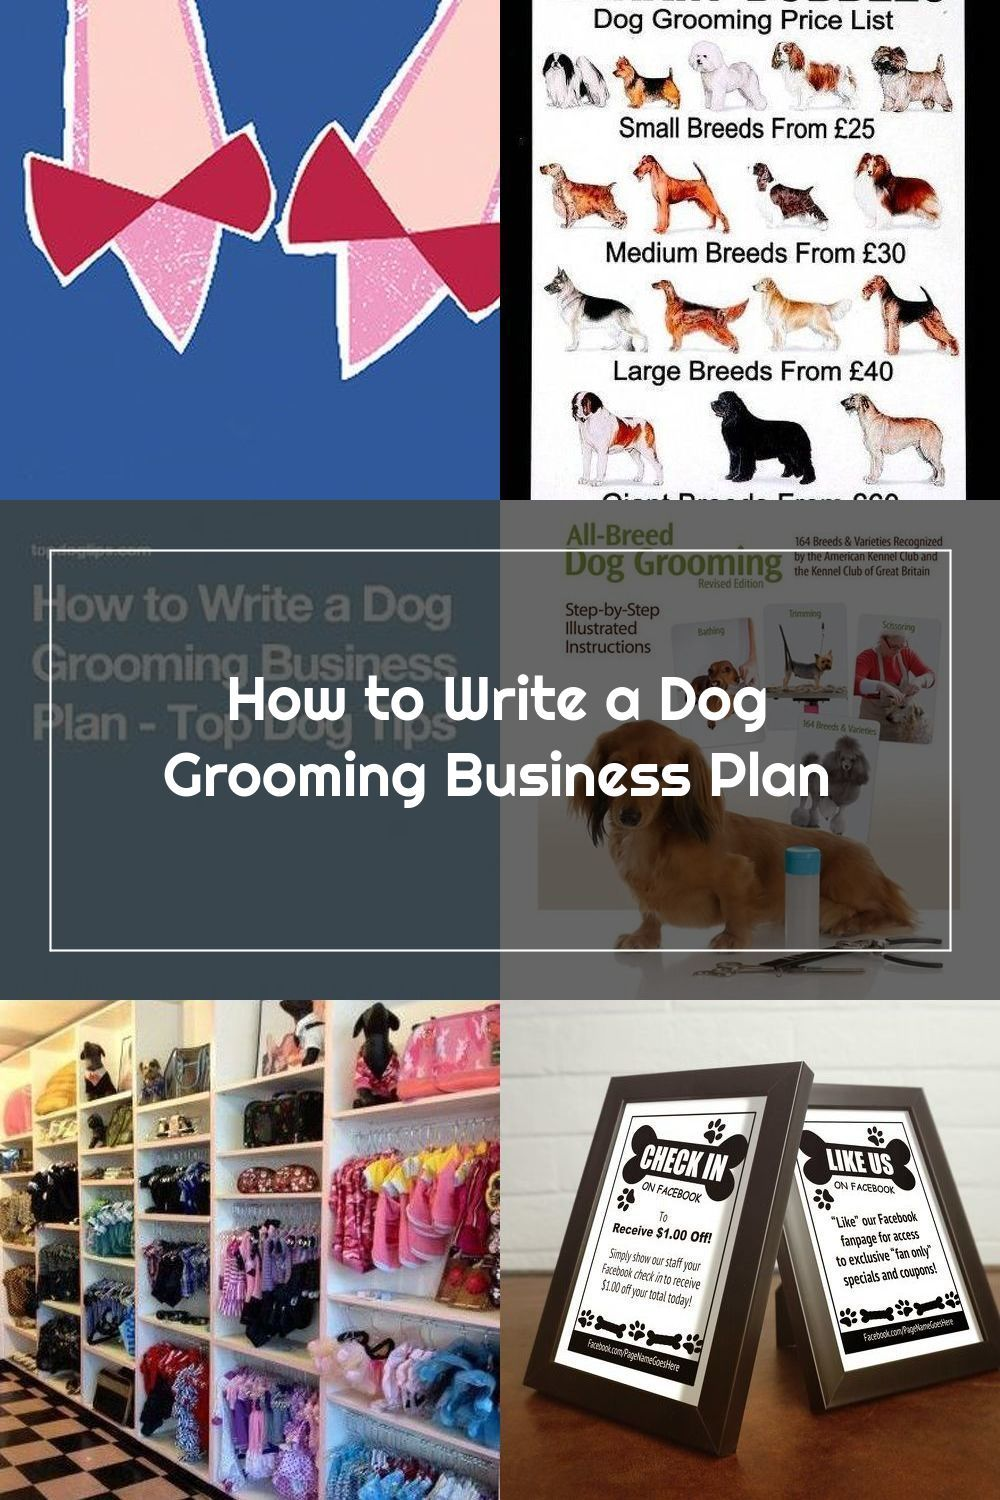 How To Write A Dog Grooming Business Plan Top Dog Tips Daycarebusinessplan In 2020 Dog Grooming Business Daycare Business Plan Dog Grooming